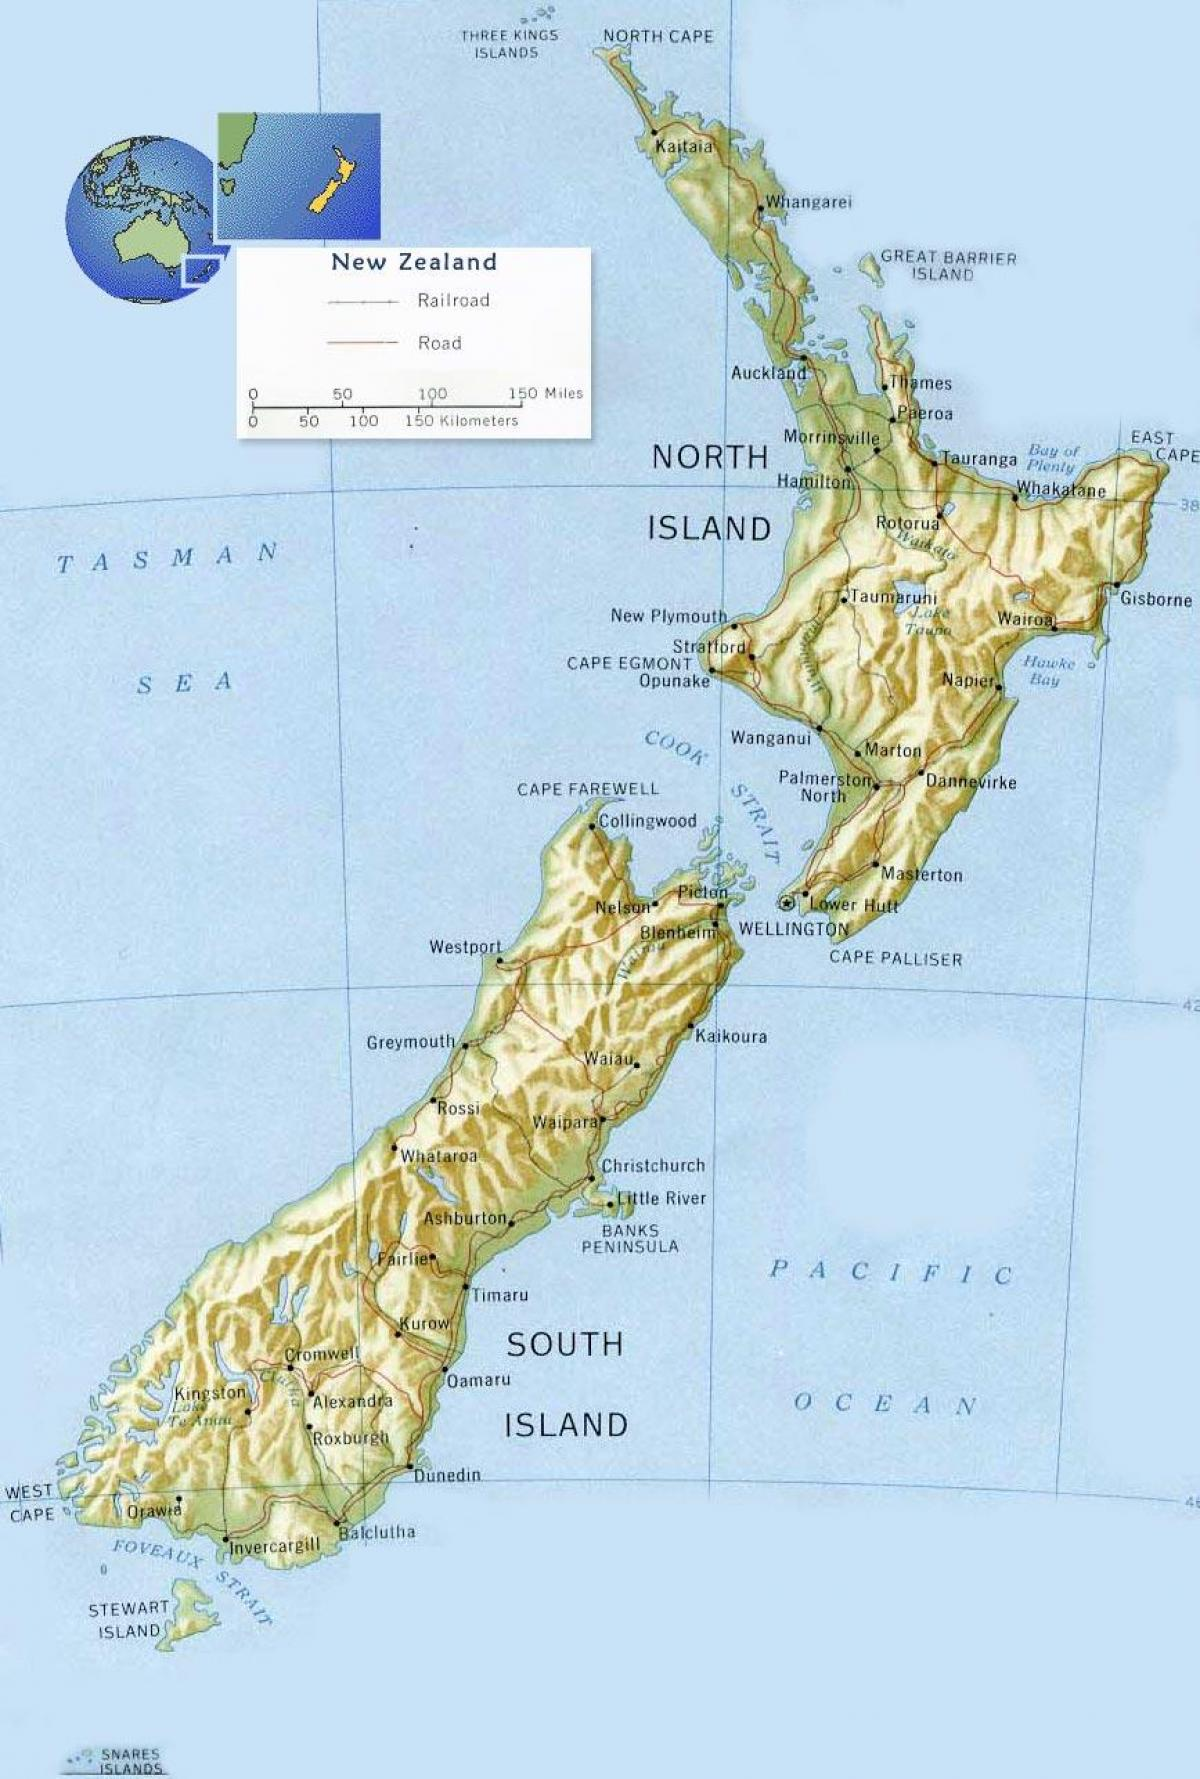 Where Is Wellington New Zealand On The Map.Wellington New Zealand Map Wellington New Zealand On Map